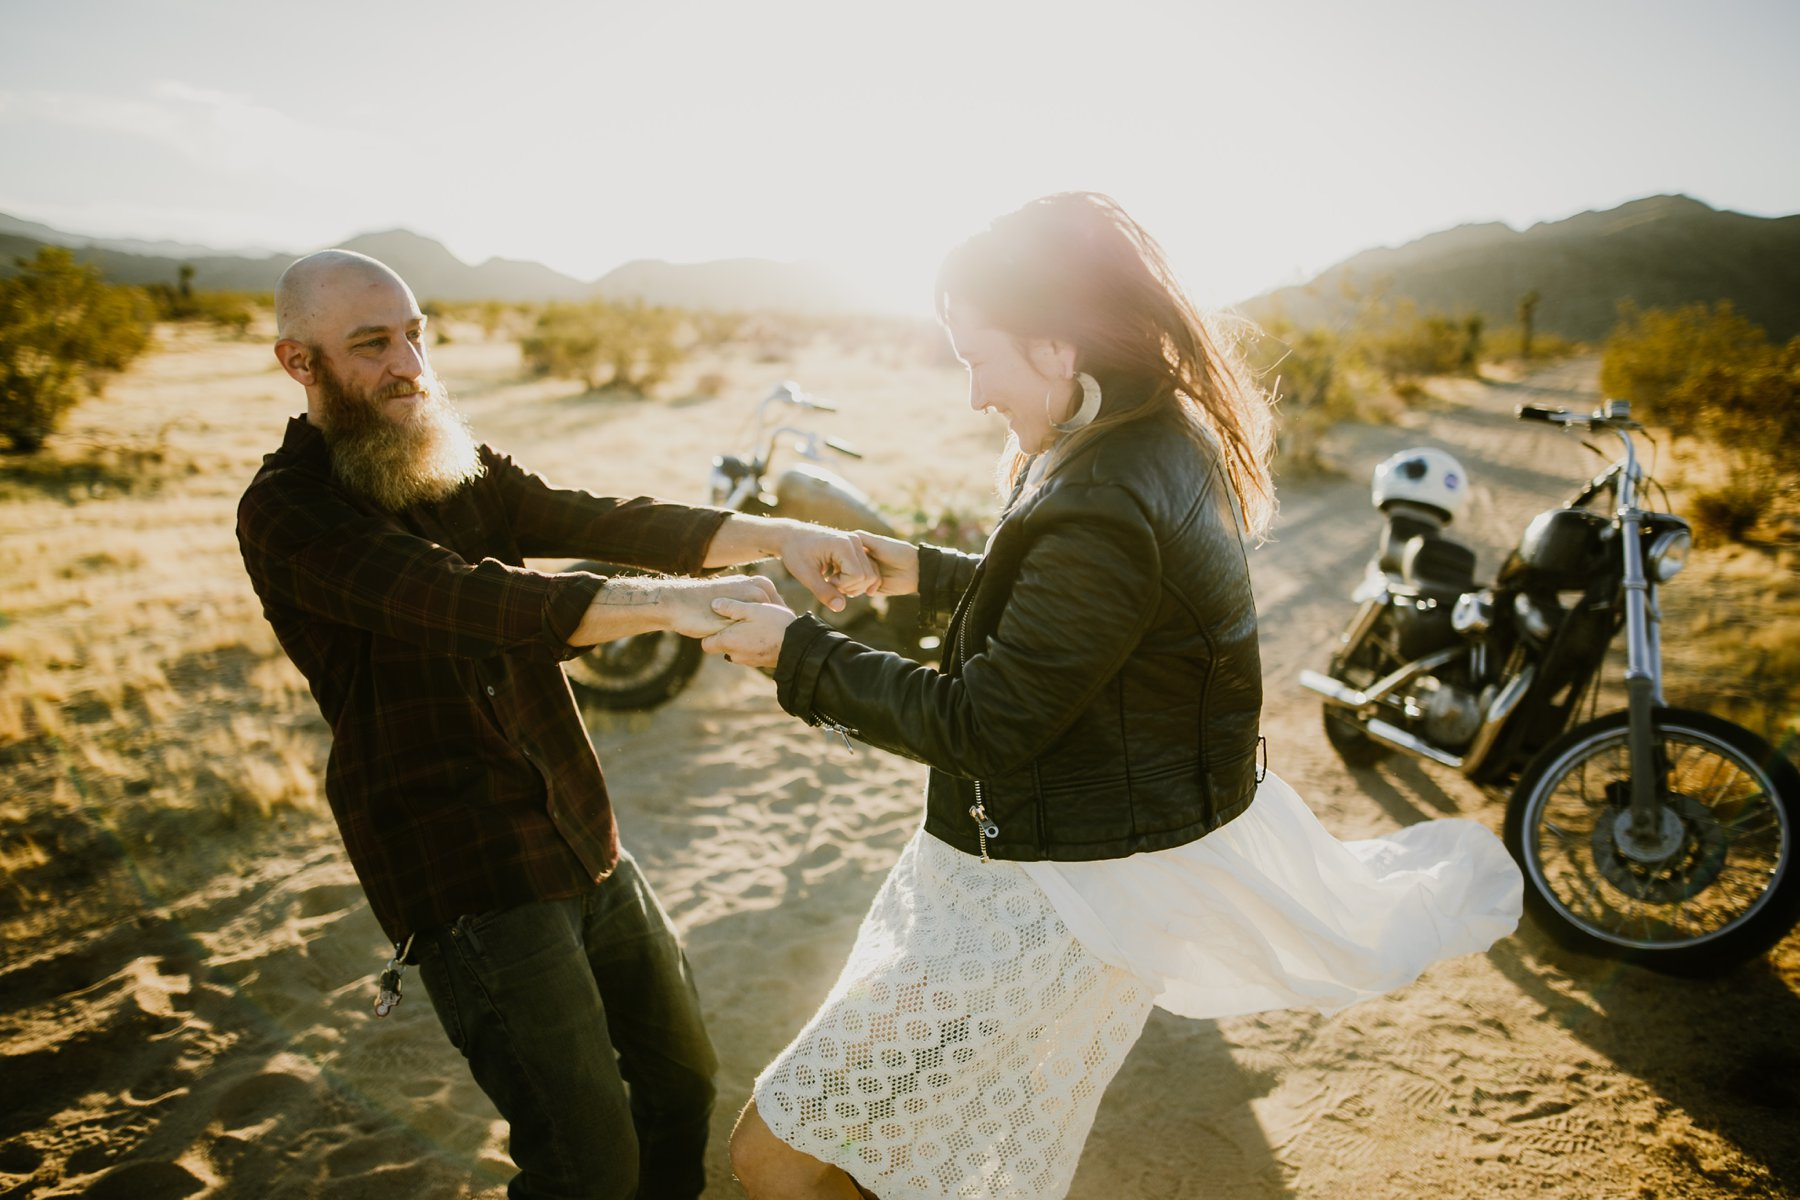 motorcycle-elopement-in-joshua-tree_0003.jpg